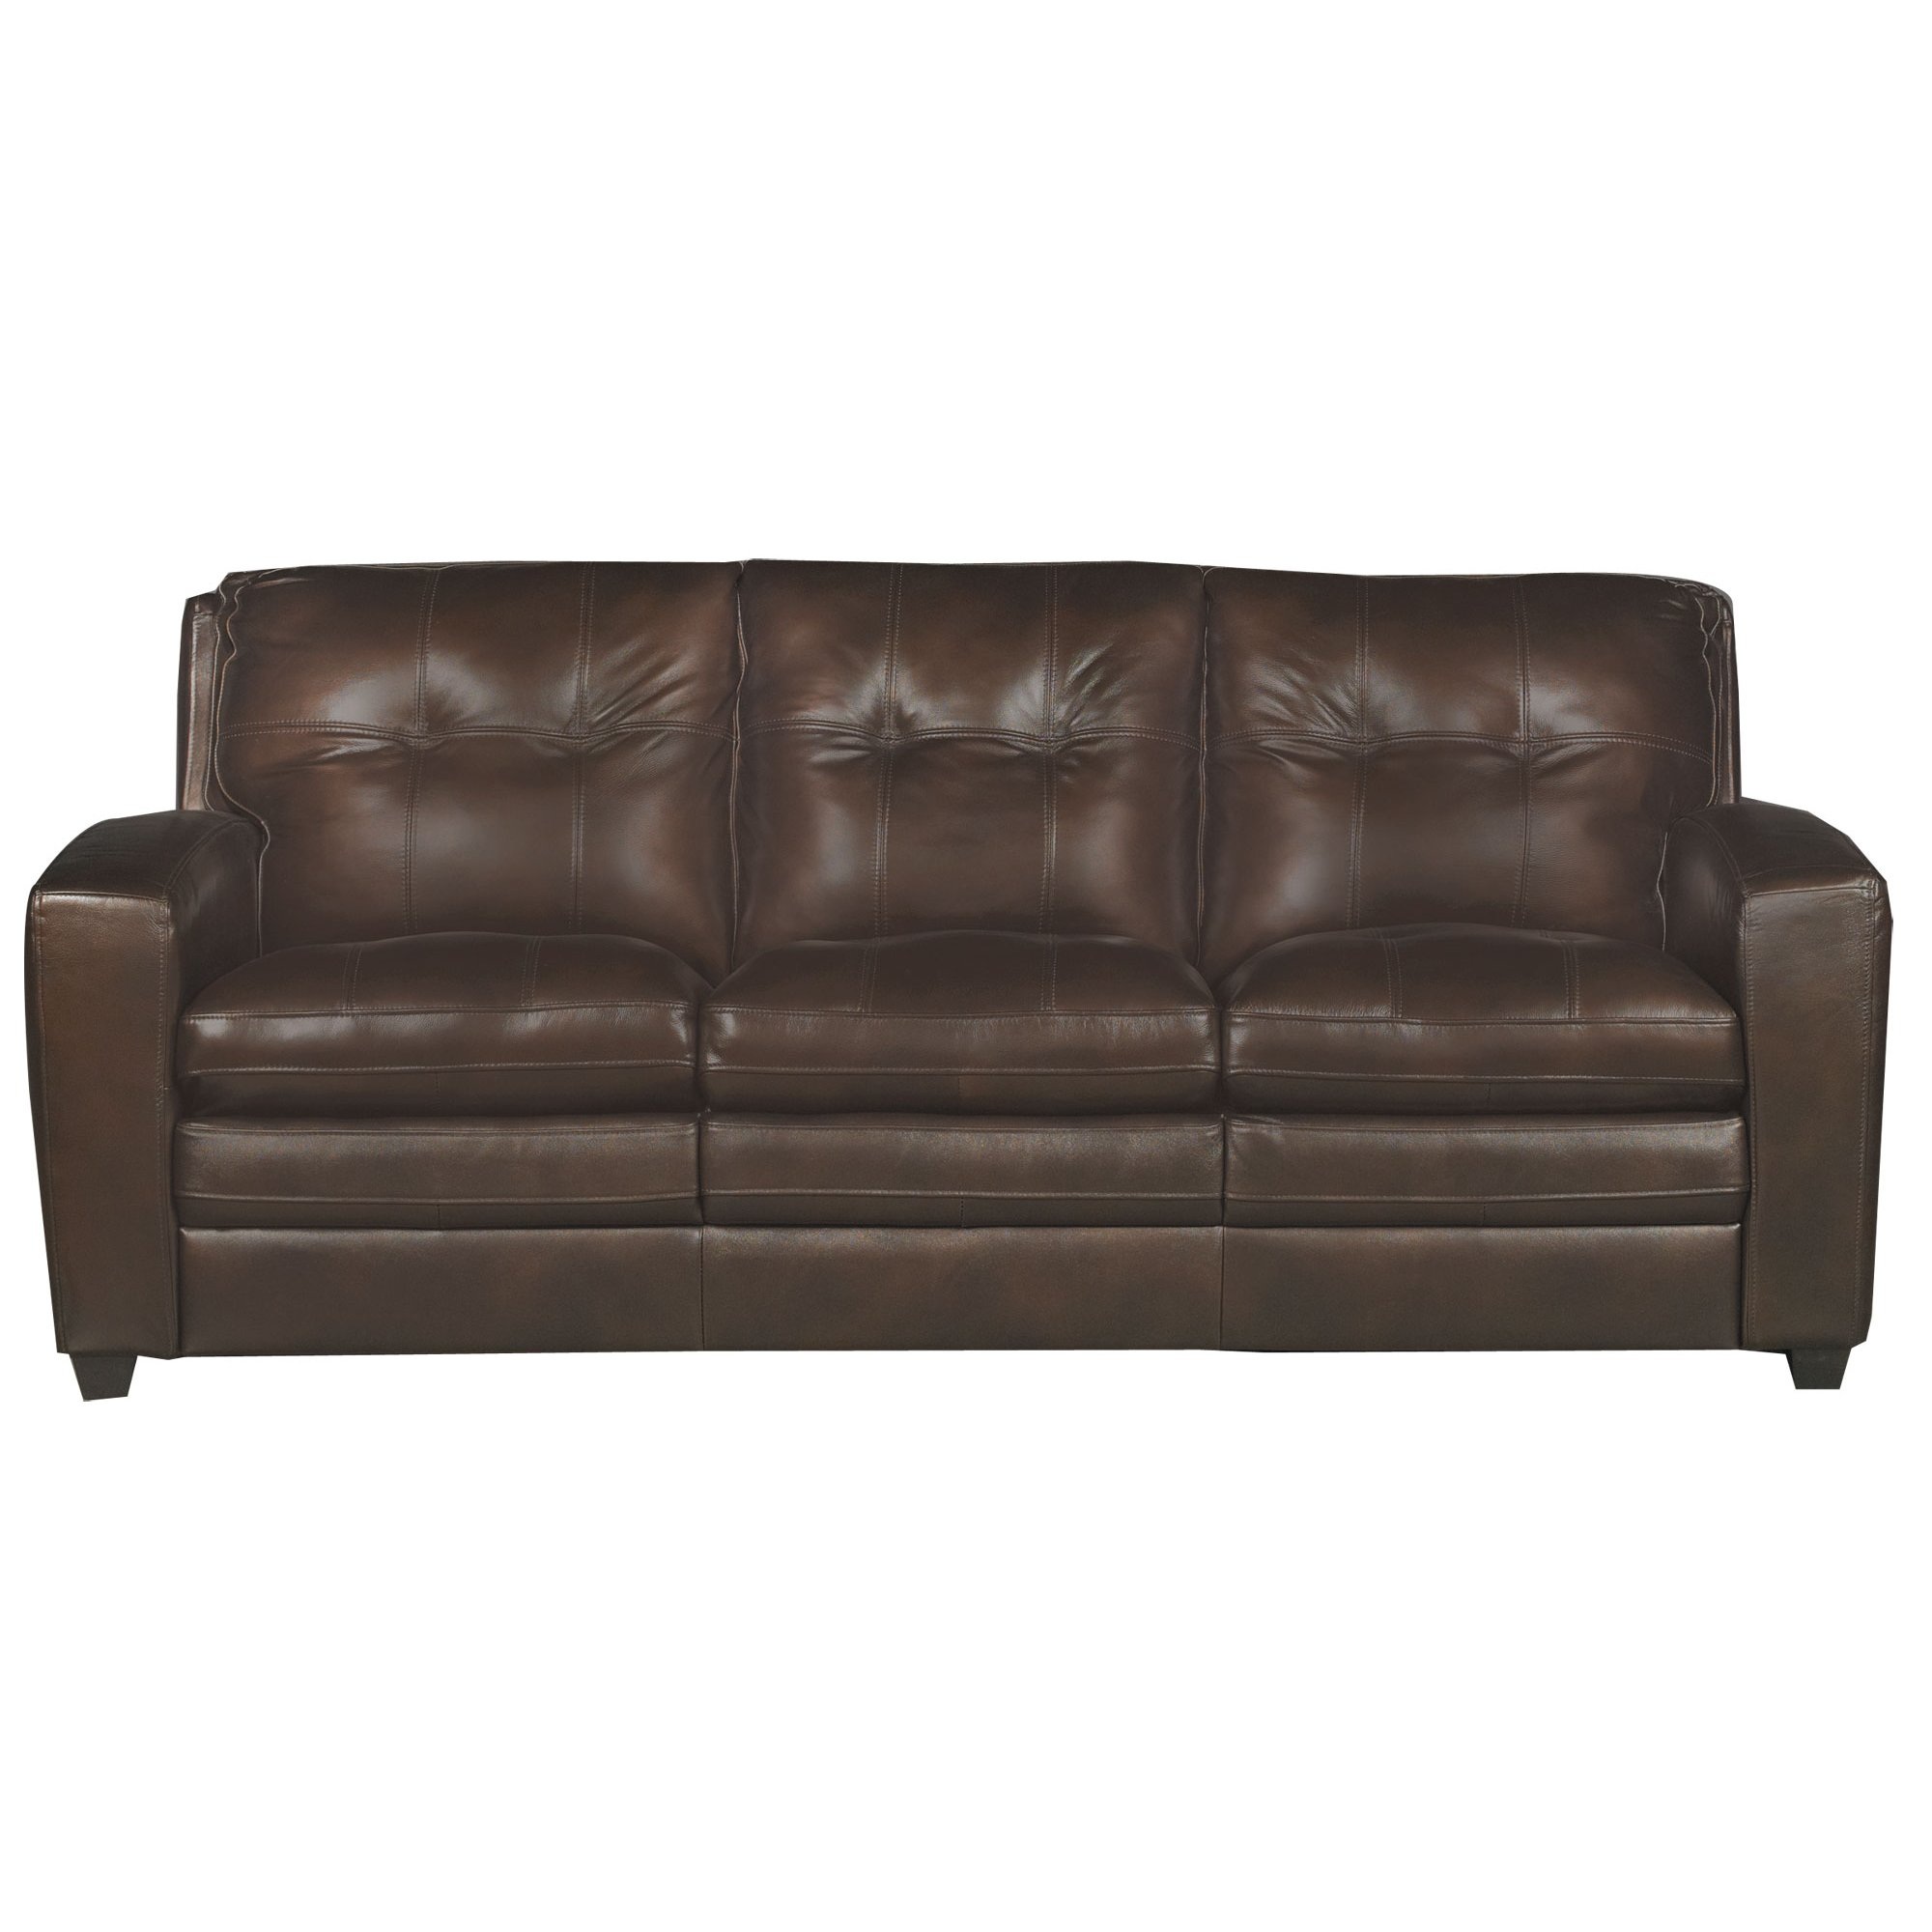 Sofa Bed Leather Brown Beautiful Leather Sofa Sleepers